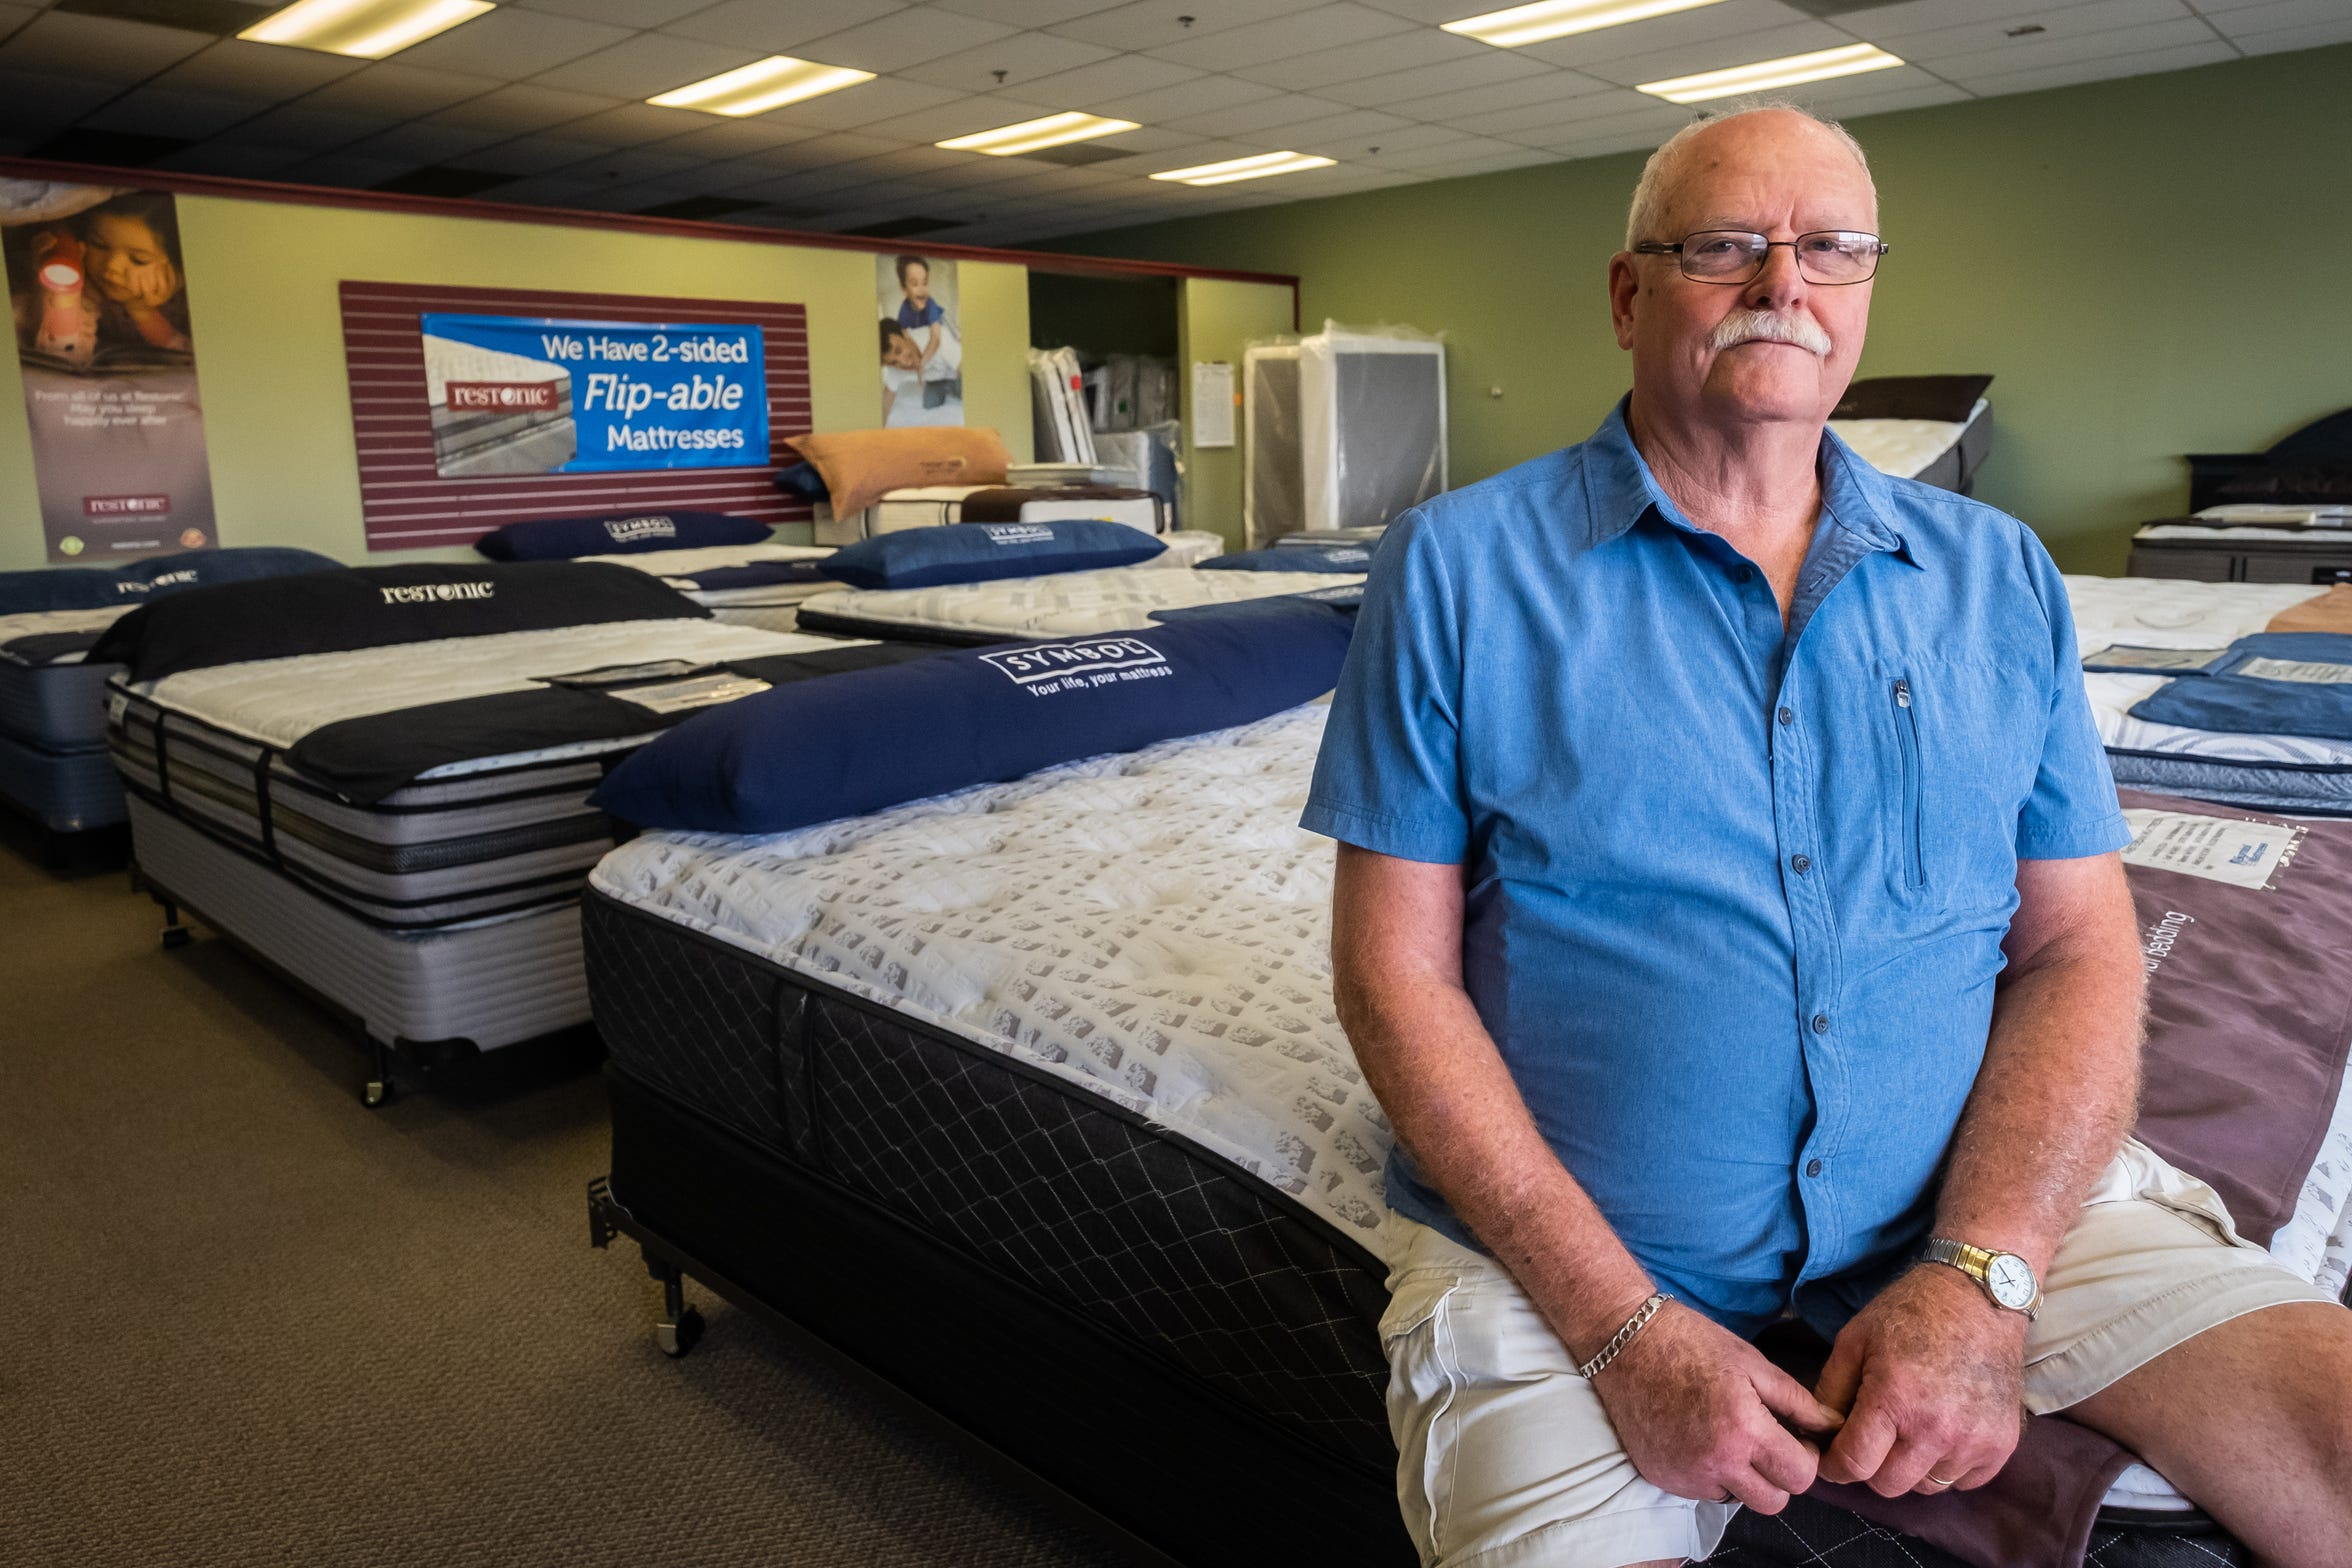 Dan Rich, who owns Trezure Hunt, sits in the store's mattress department for a photo Tuesday, Oct. 1, 2019. Trezure Hunt, which sells new and higher-end used furniture, was one of the first tenants in the Market Square strip mall in Marysville.